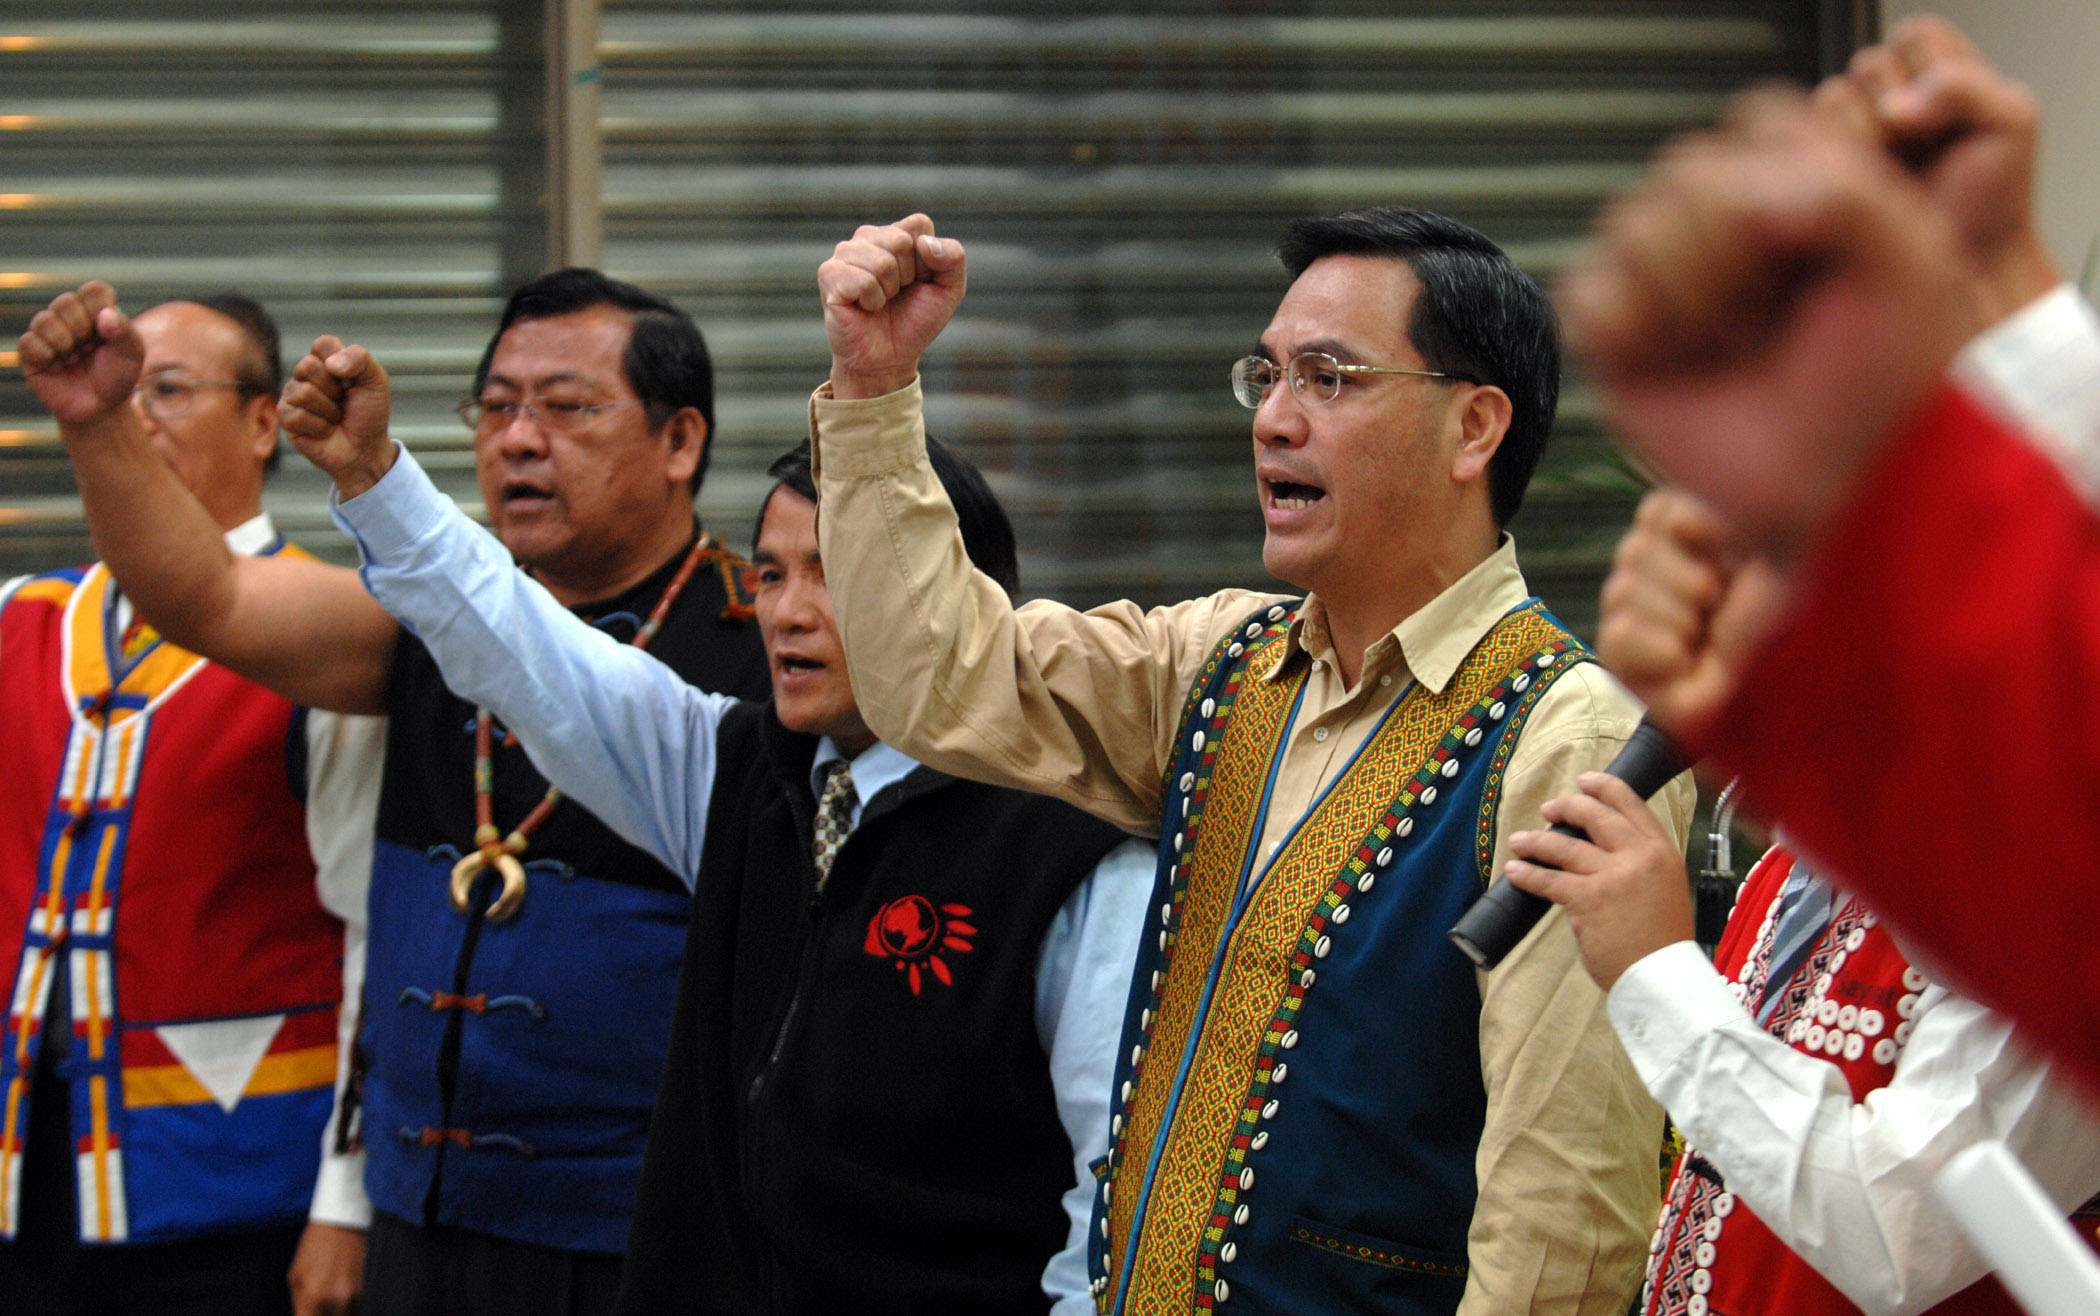 The Council of Indigenous Peoples Minister Icyang Parod, far right, attended the committee review Wednesday to show his support for the Aboriginal lan...